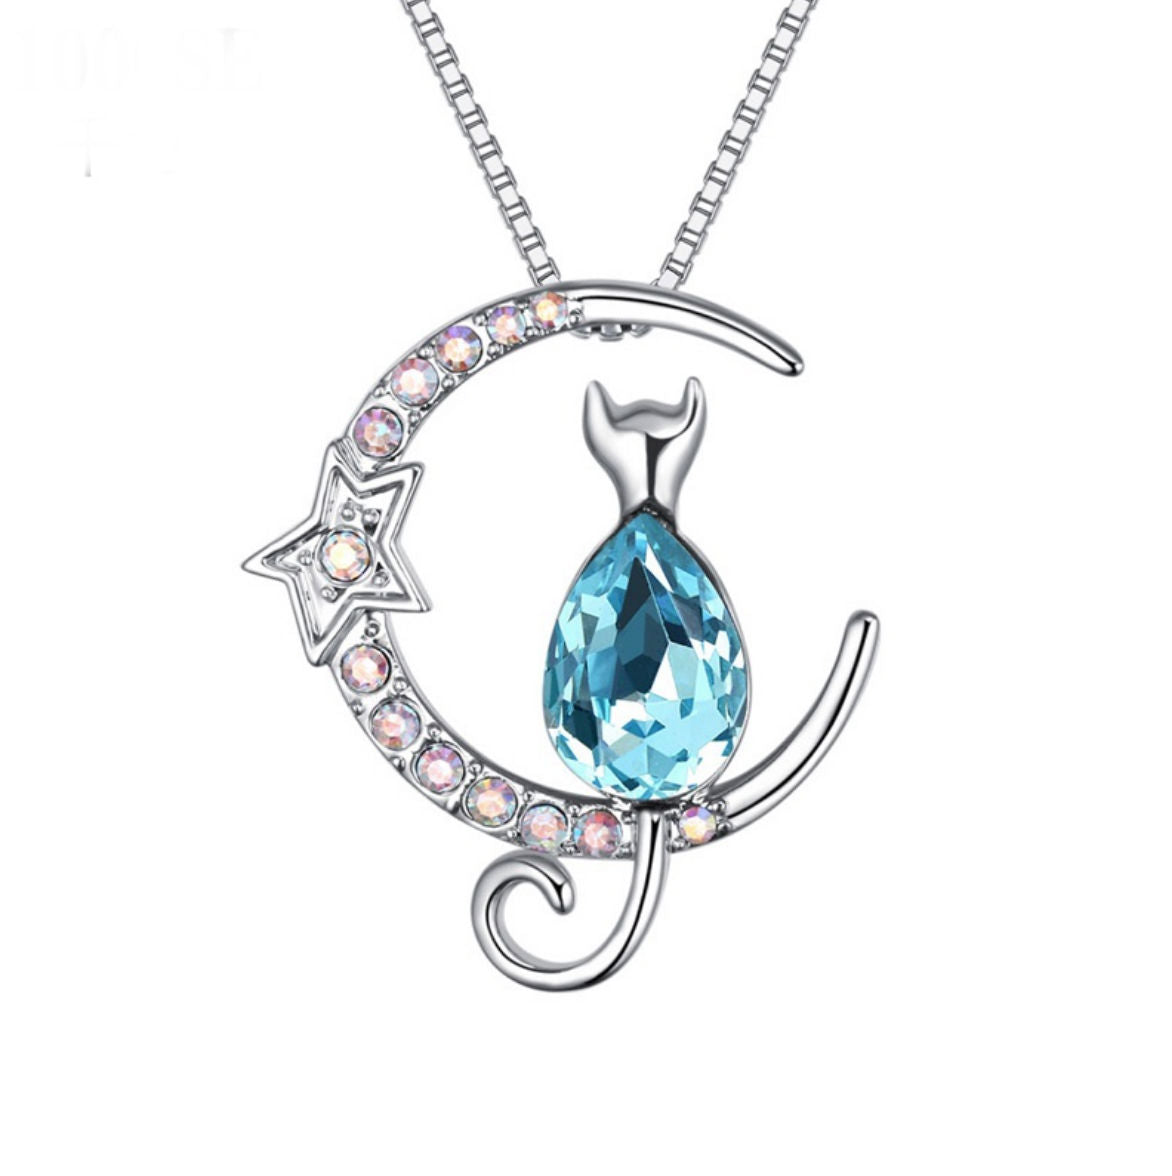 354cb3510c1 Cat on the Moon Pendant Necklace with Swarovski Crystal - She Jewelers